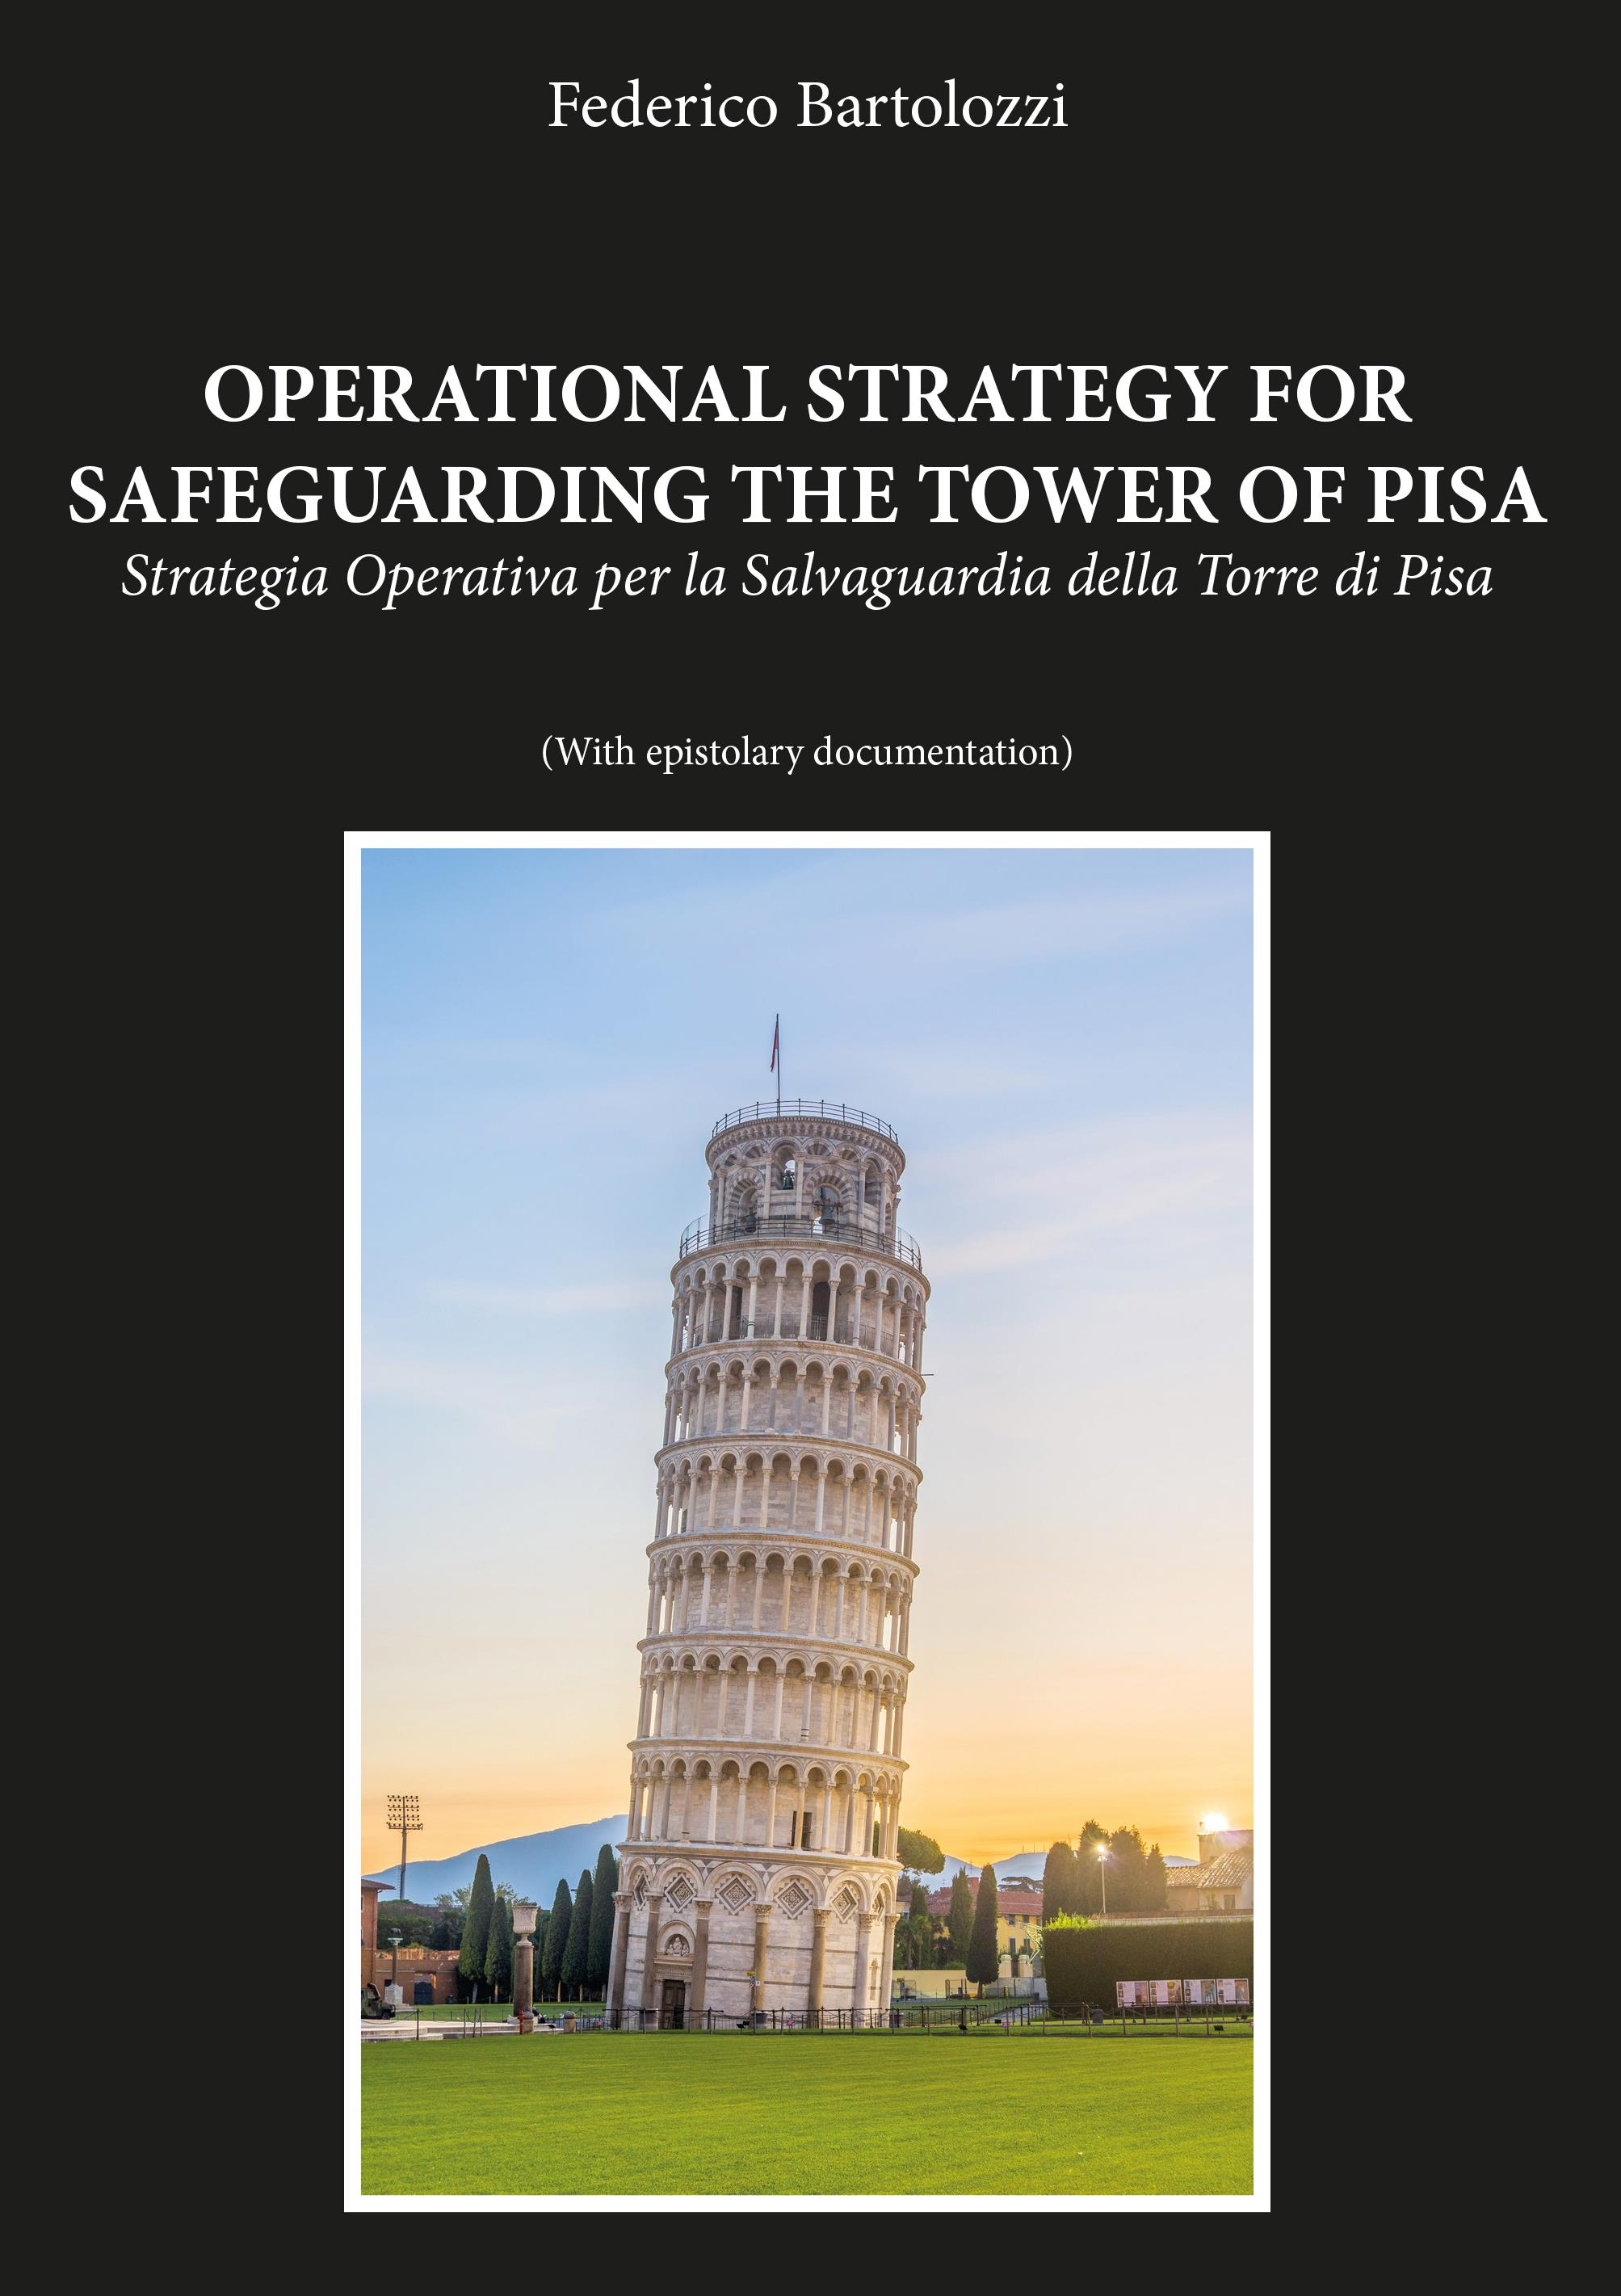 OPERATIONAL STRATEGY FOR SAFEGUARDING THE TOWER OF PISA [STRATEGIA OPERATIVA PER LA SALVAGUARDIA DELLA TORRE DI PISA]